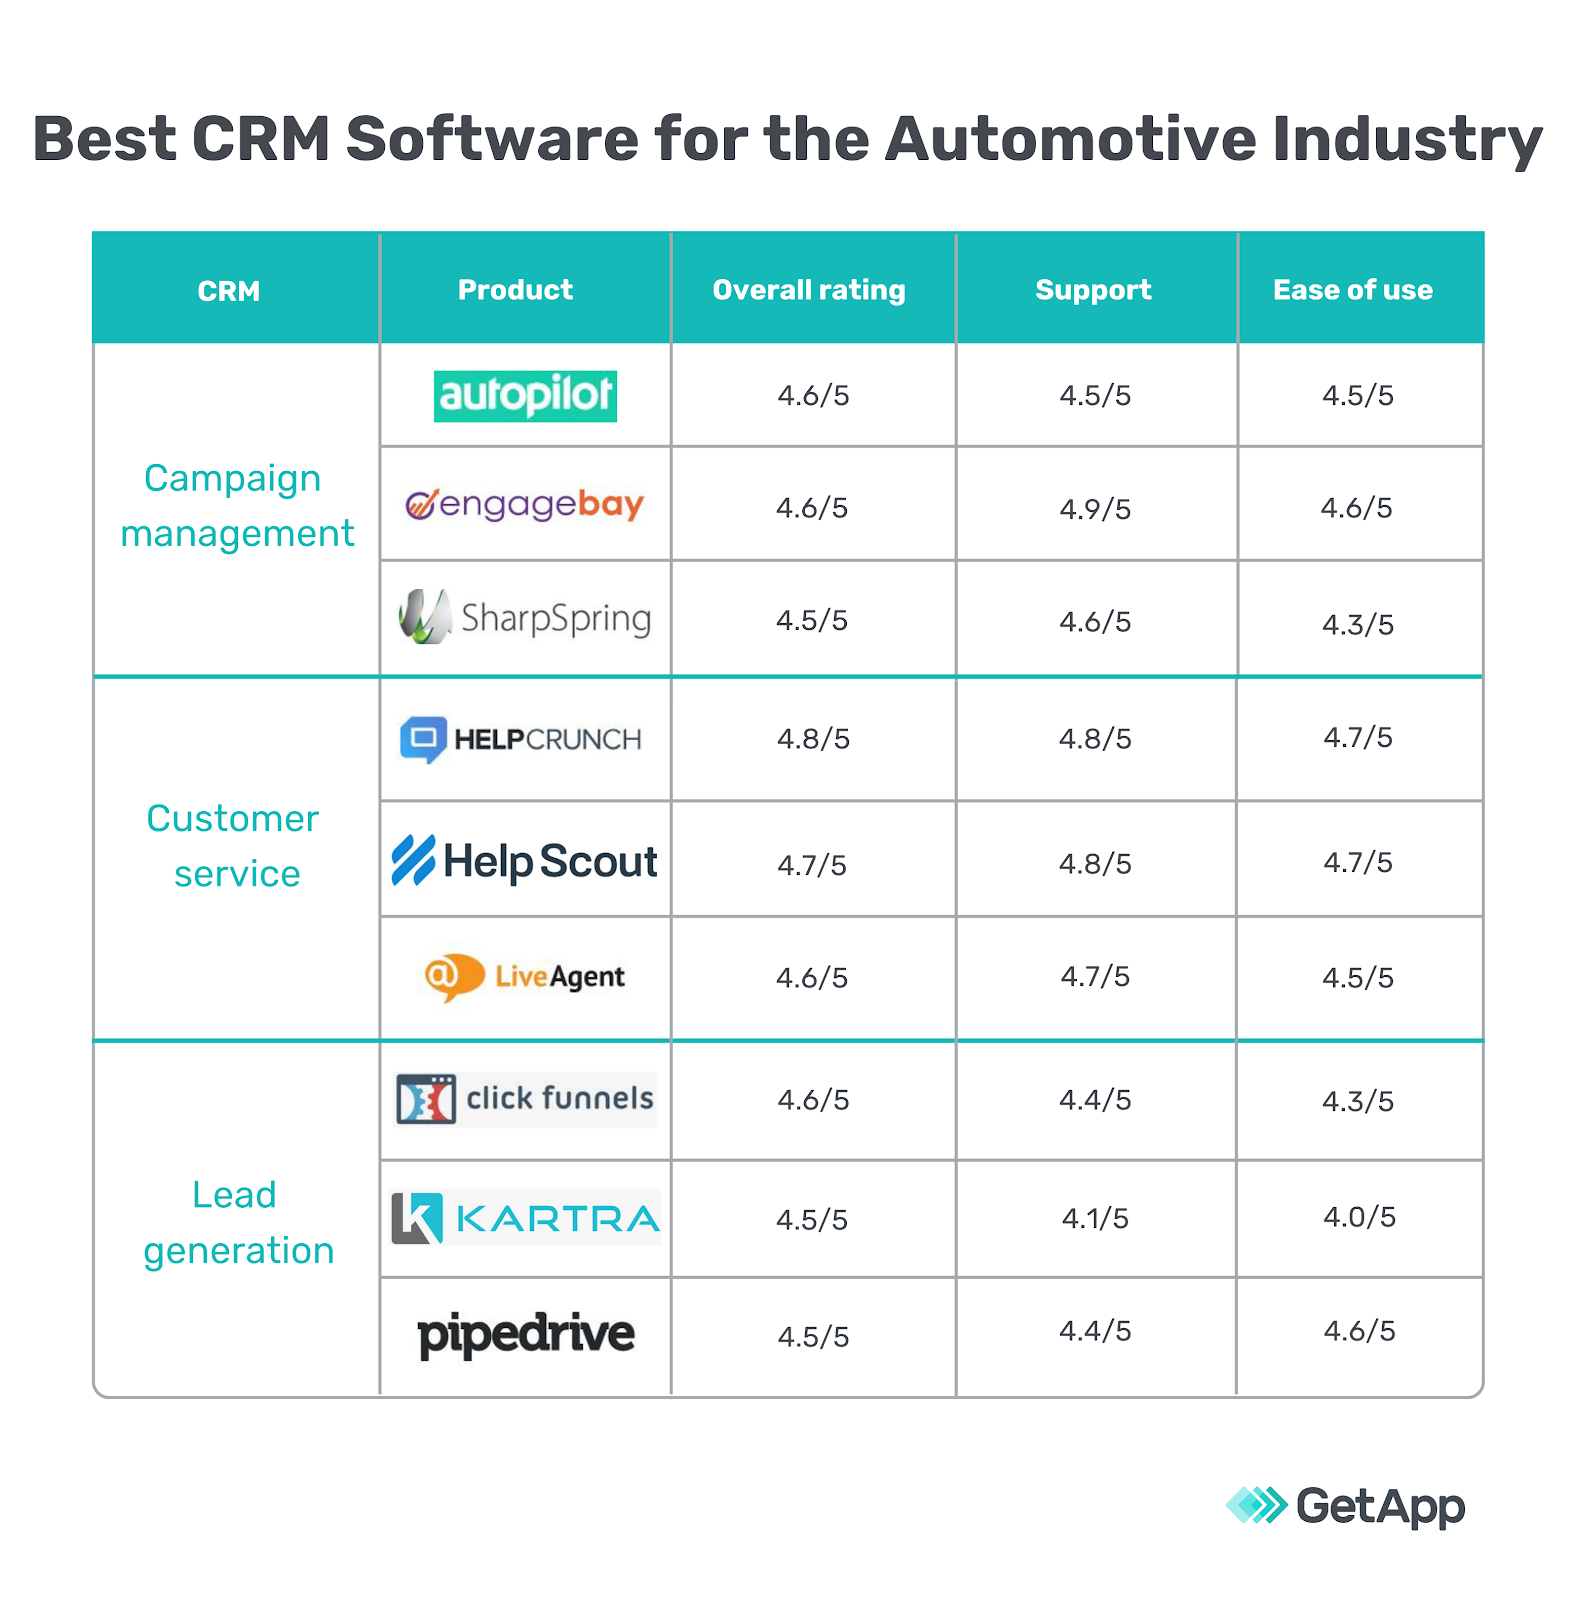 Best CRM software for the automotive industry